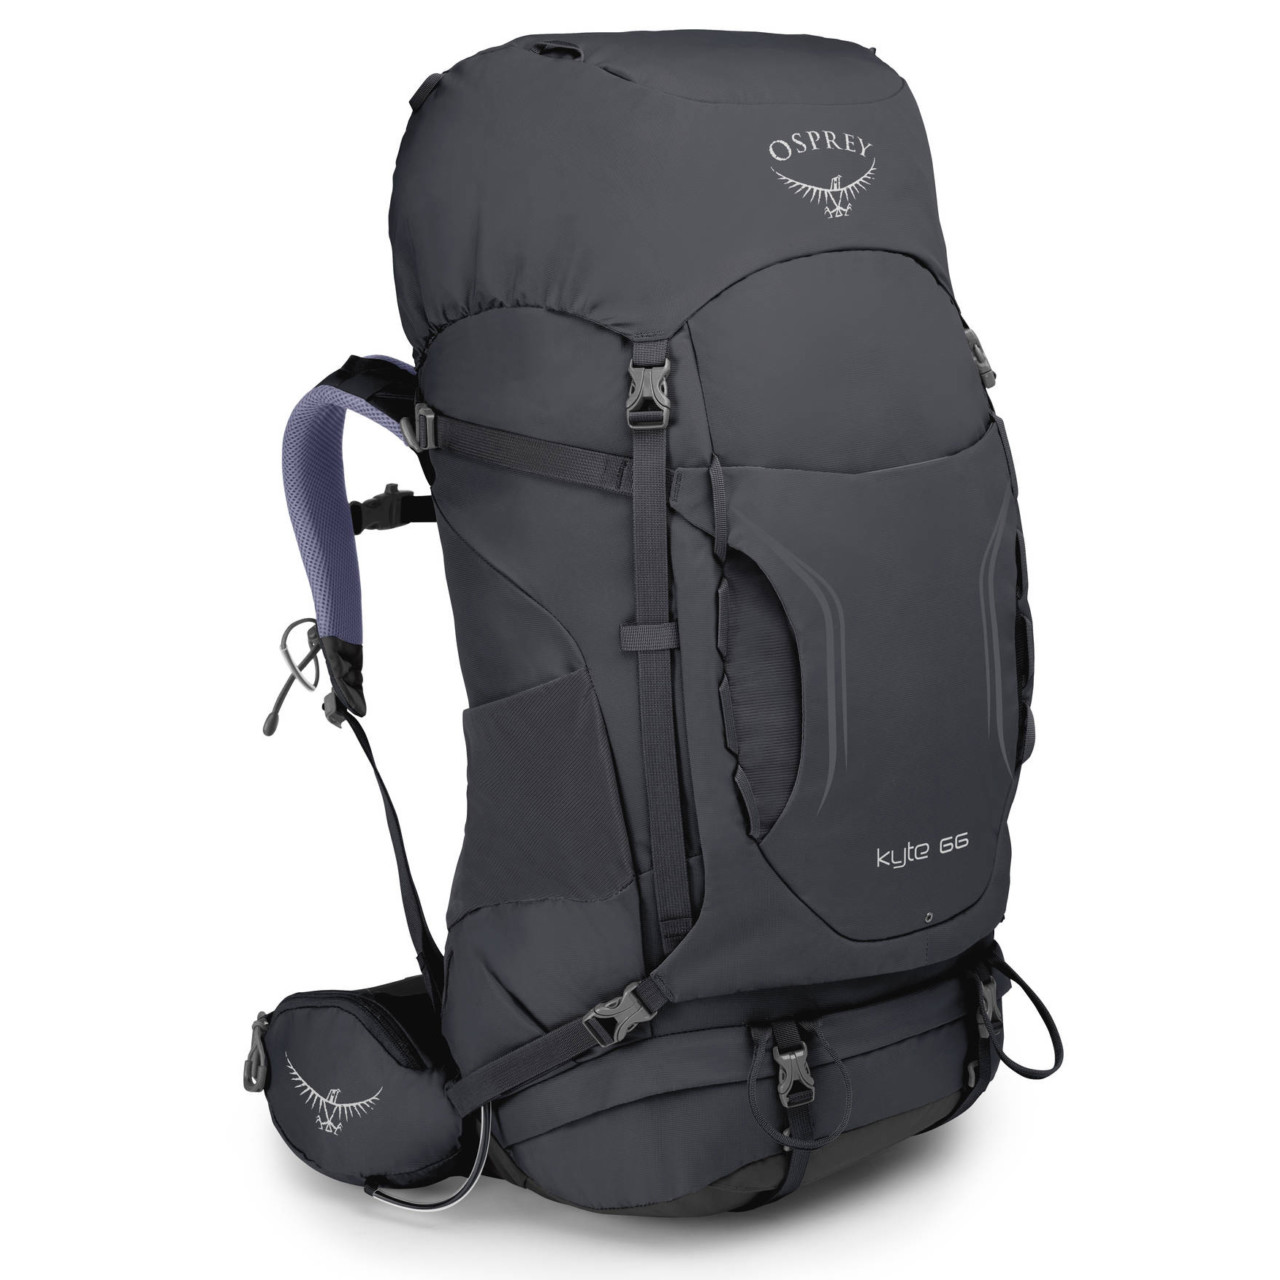 Osprey backpack Kestrel/ Kyte 58-68L